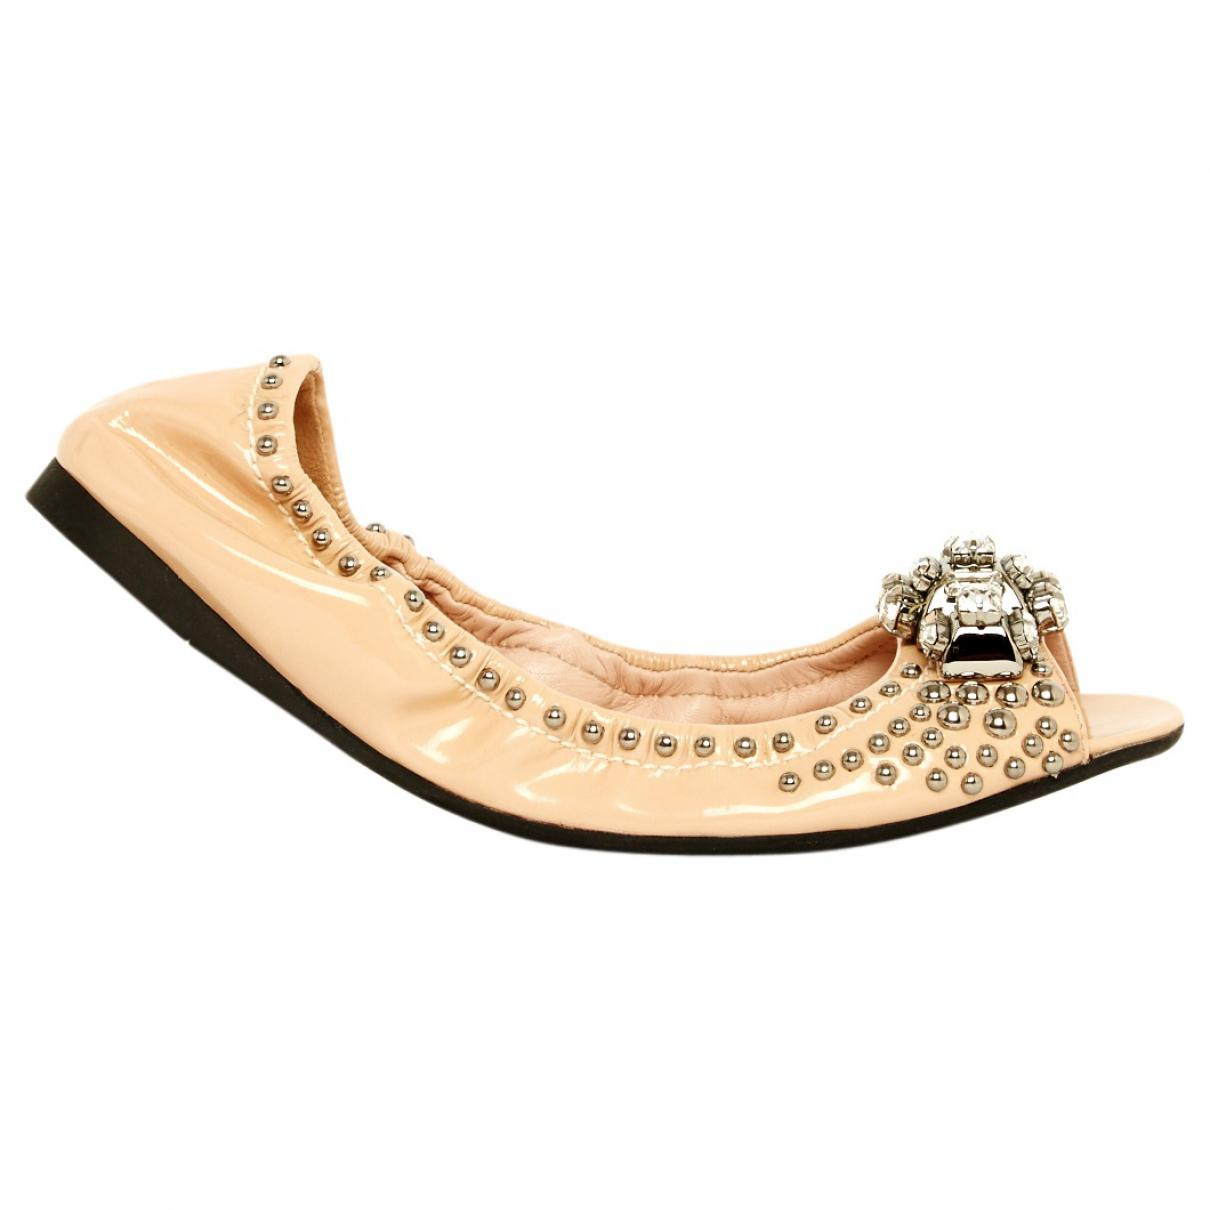 outlet store 3f058 0b811 miu-miu-Pink-Pre-owned-Leather-Varnish-Ballet-Flats.jpeg